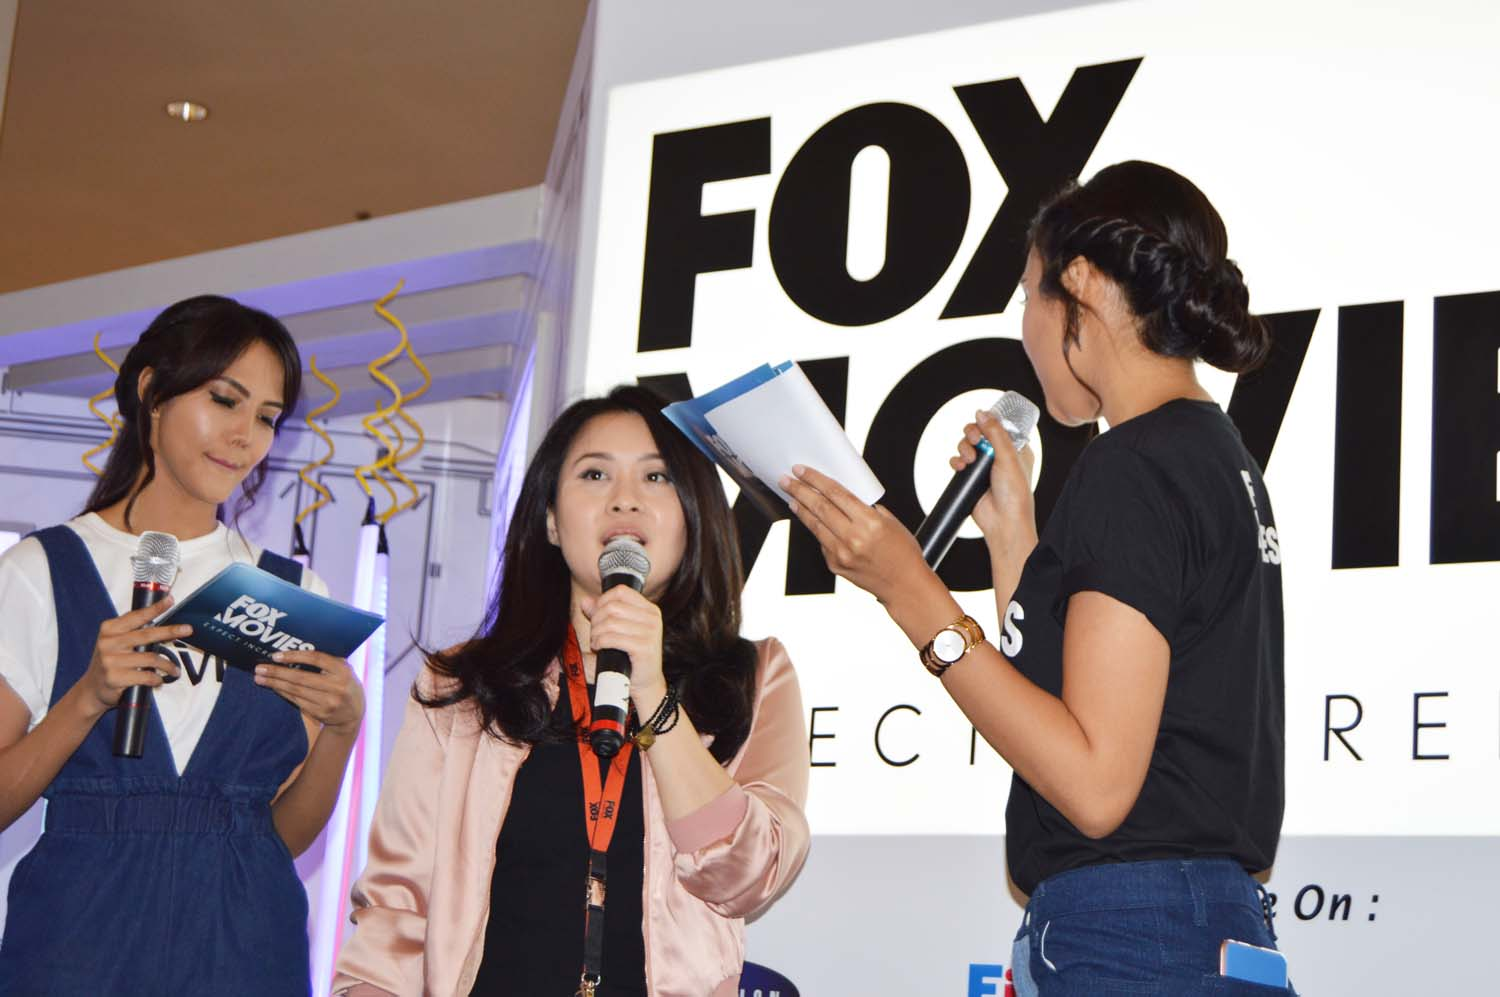 <a  style='text-decoration: none; font-weight:bold;' href=http://www.redwhitecommunication.com:80/index.php/_home/news/id/MTIy.php>Fox Movies Lakukan Perubahan Saluran Mulai 10 Juni 2017</a>